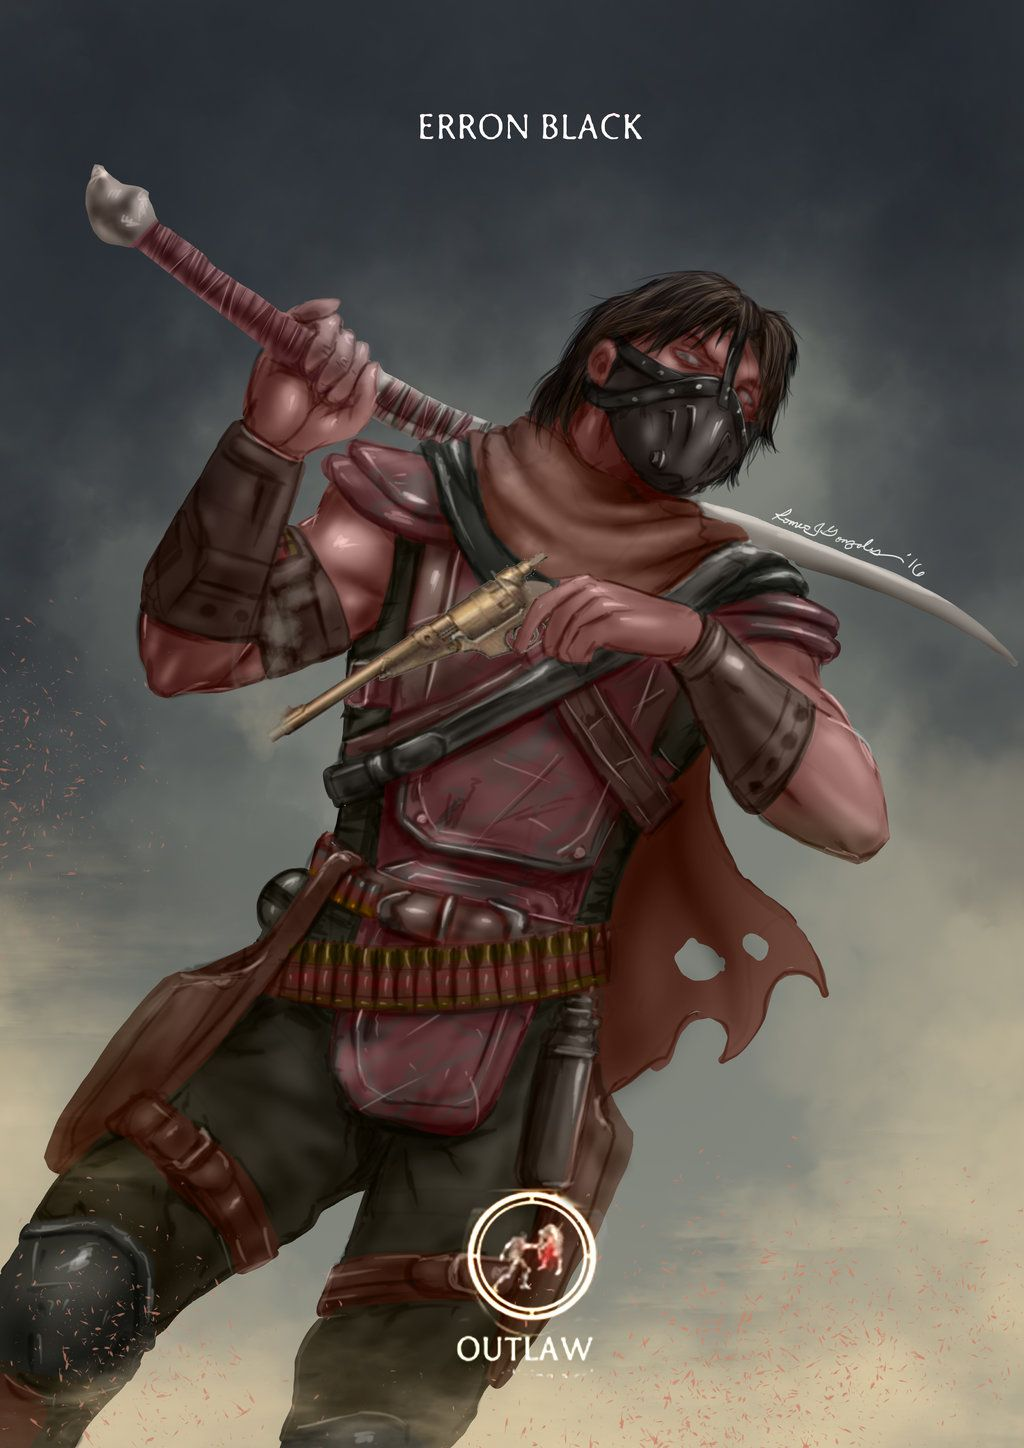 mortal kombat erron black